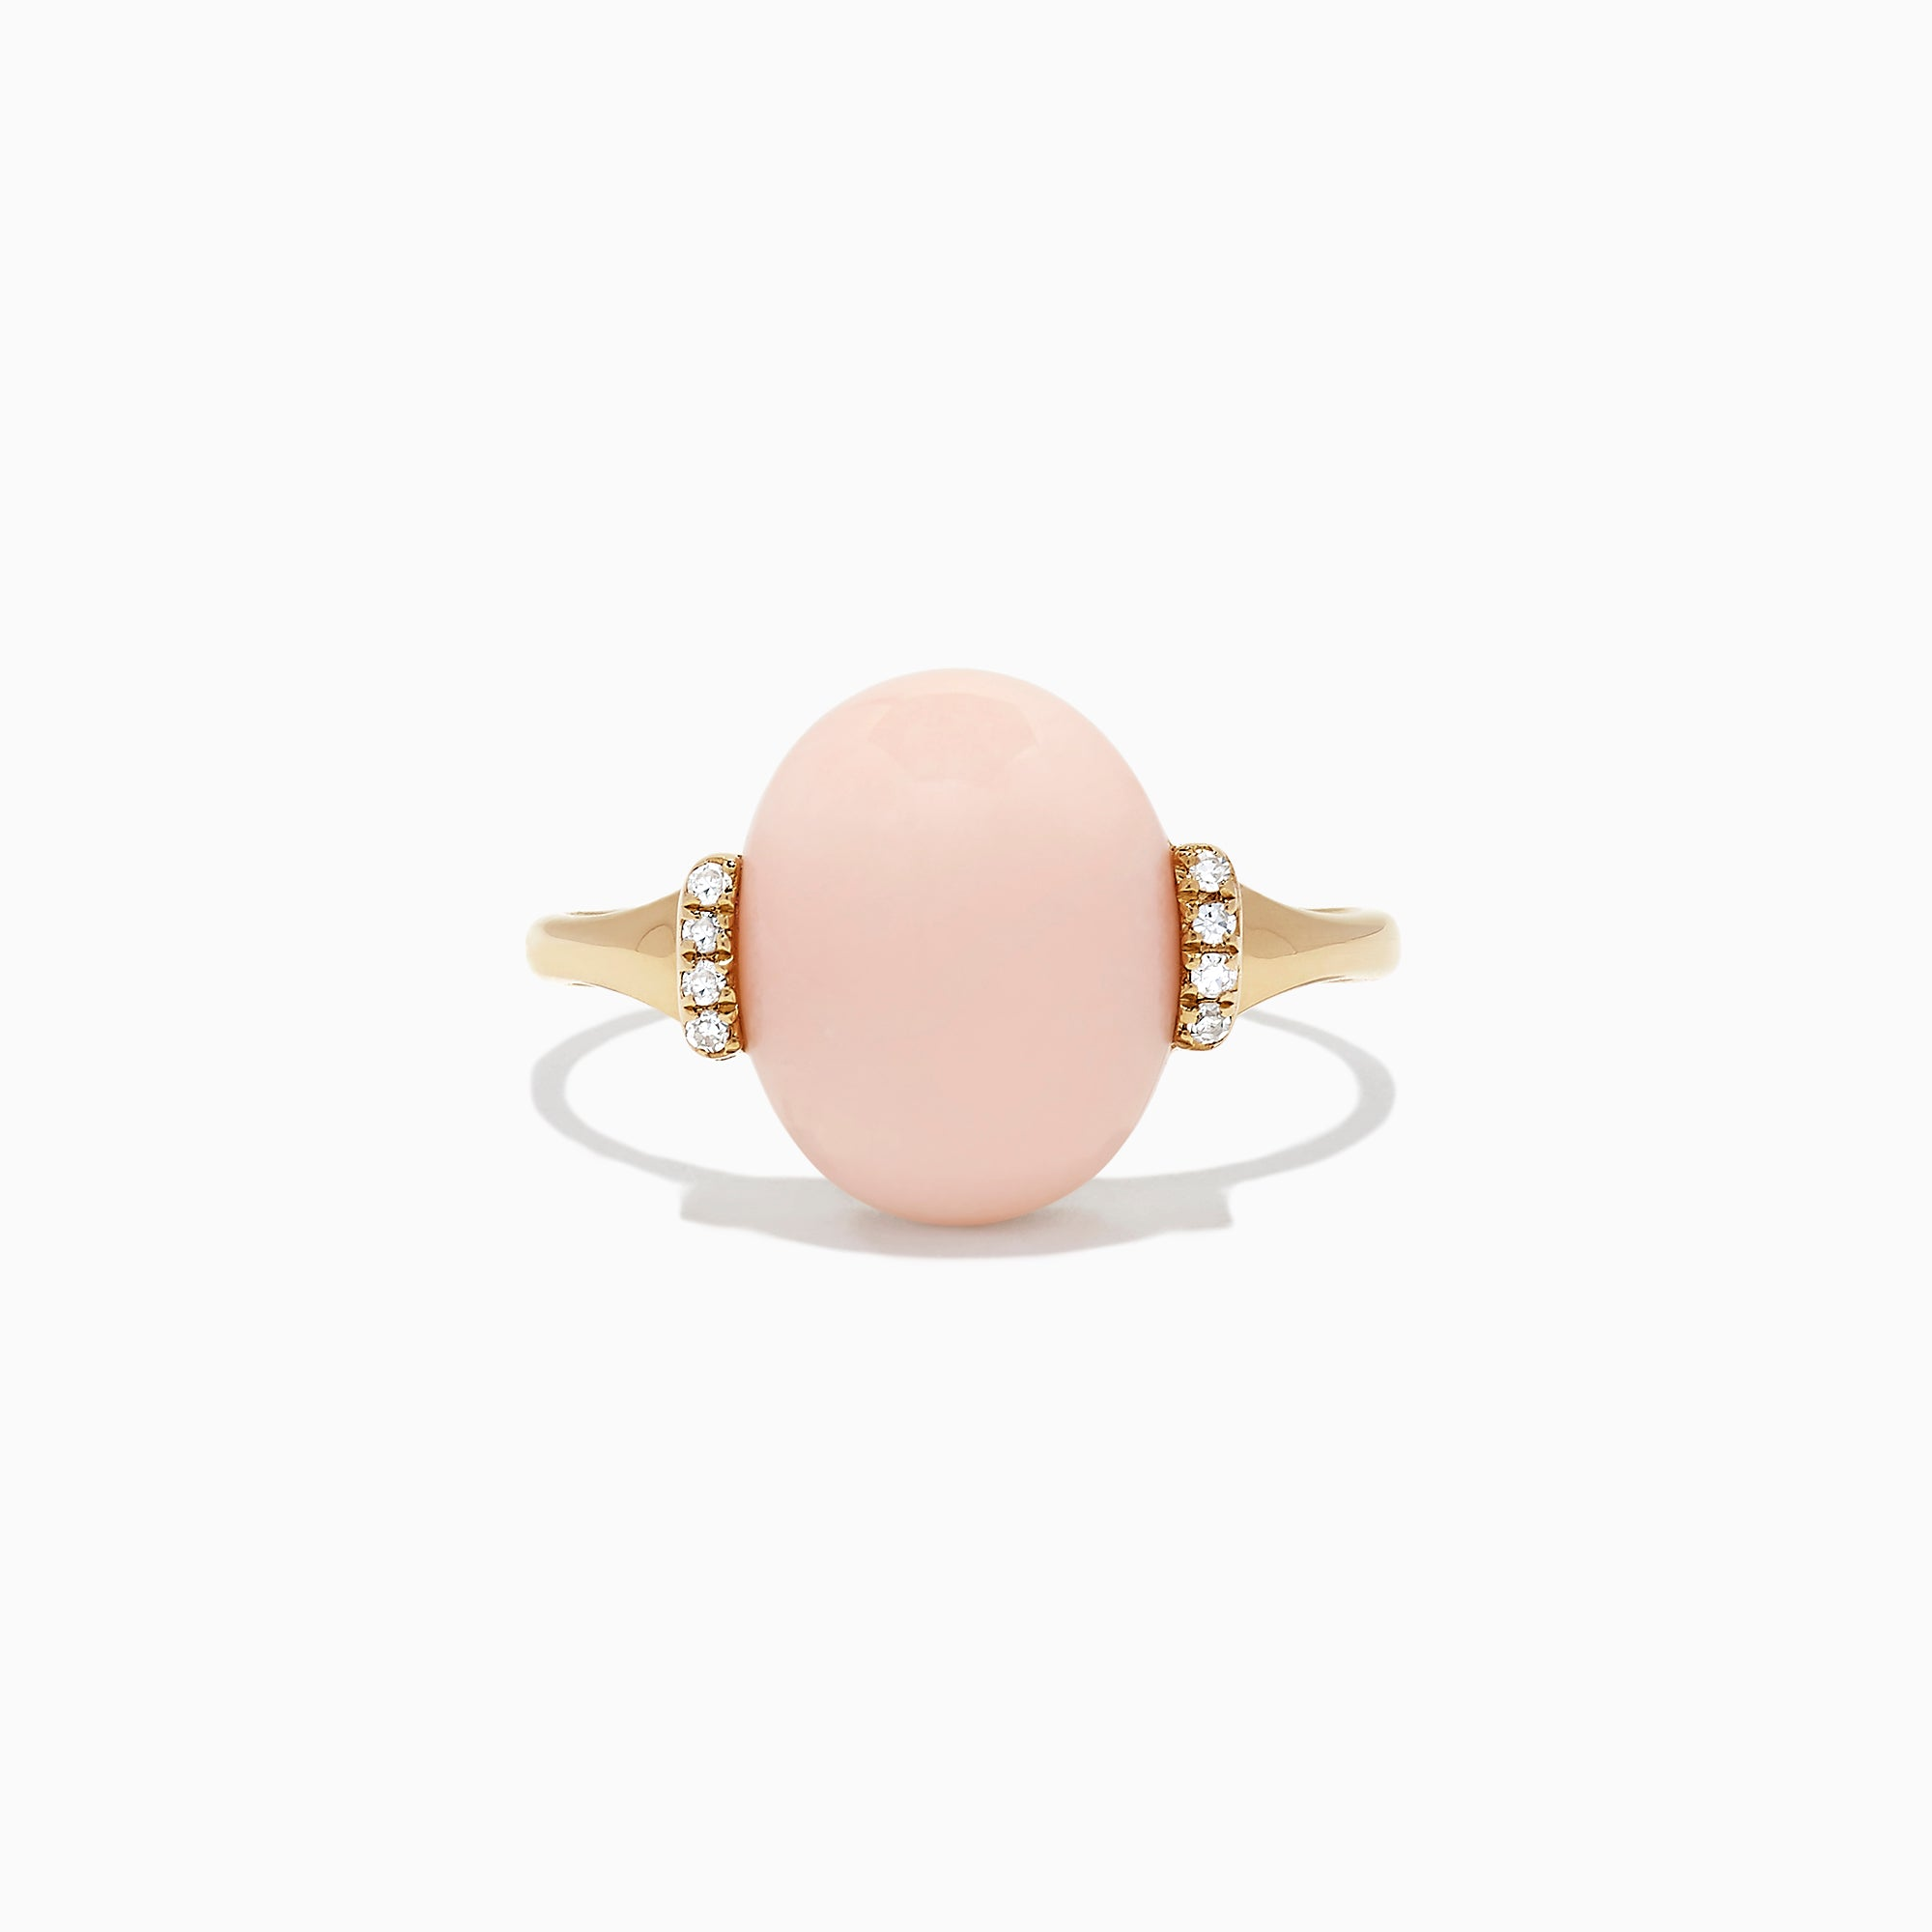 Effy 14K Yellow Gold Coral and Diamond Ring, 4.08 TCW